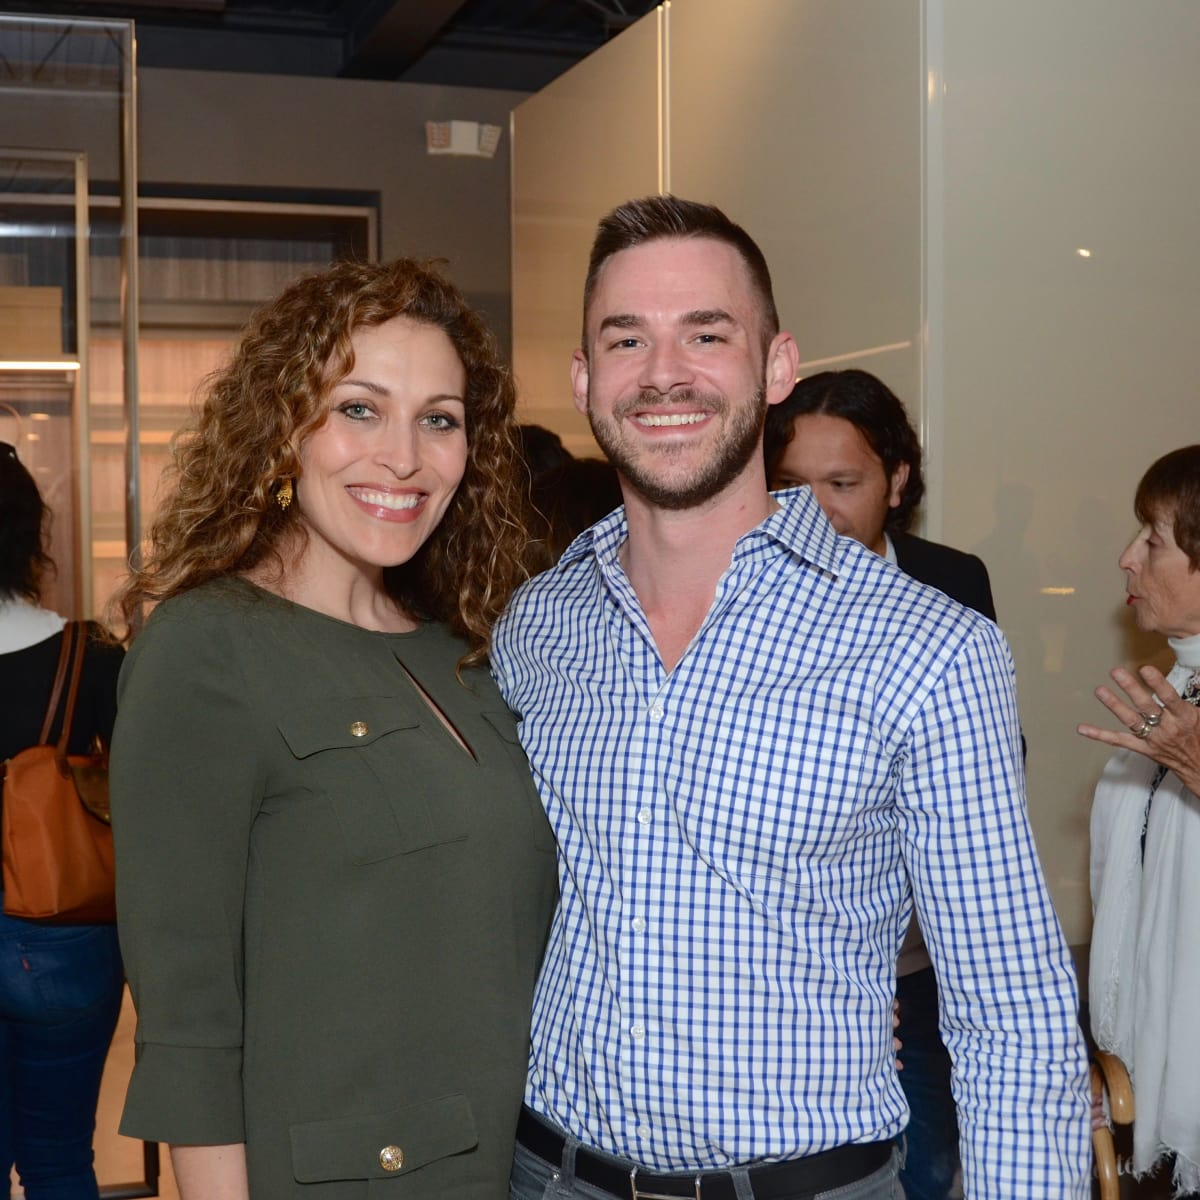 BeDESIGN cocktail party, Carla Muñoz, Adam Cook